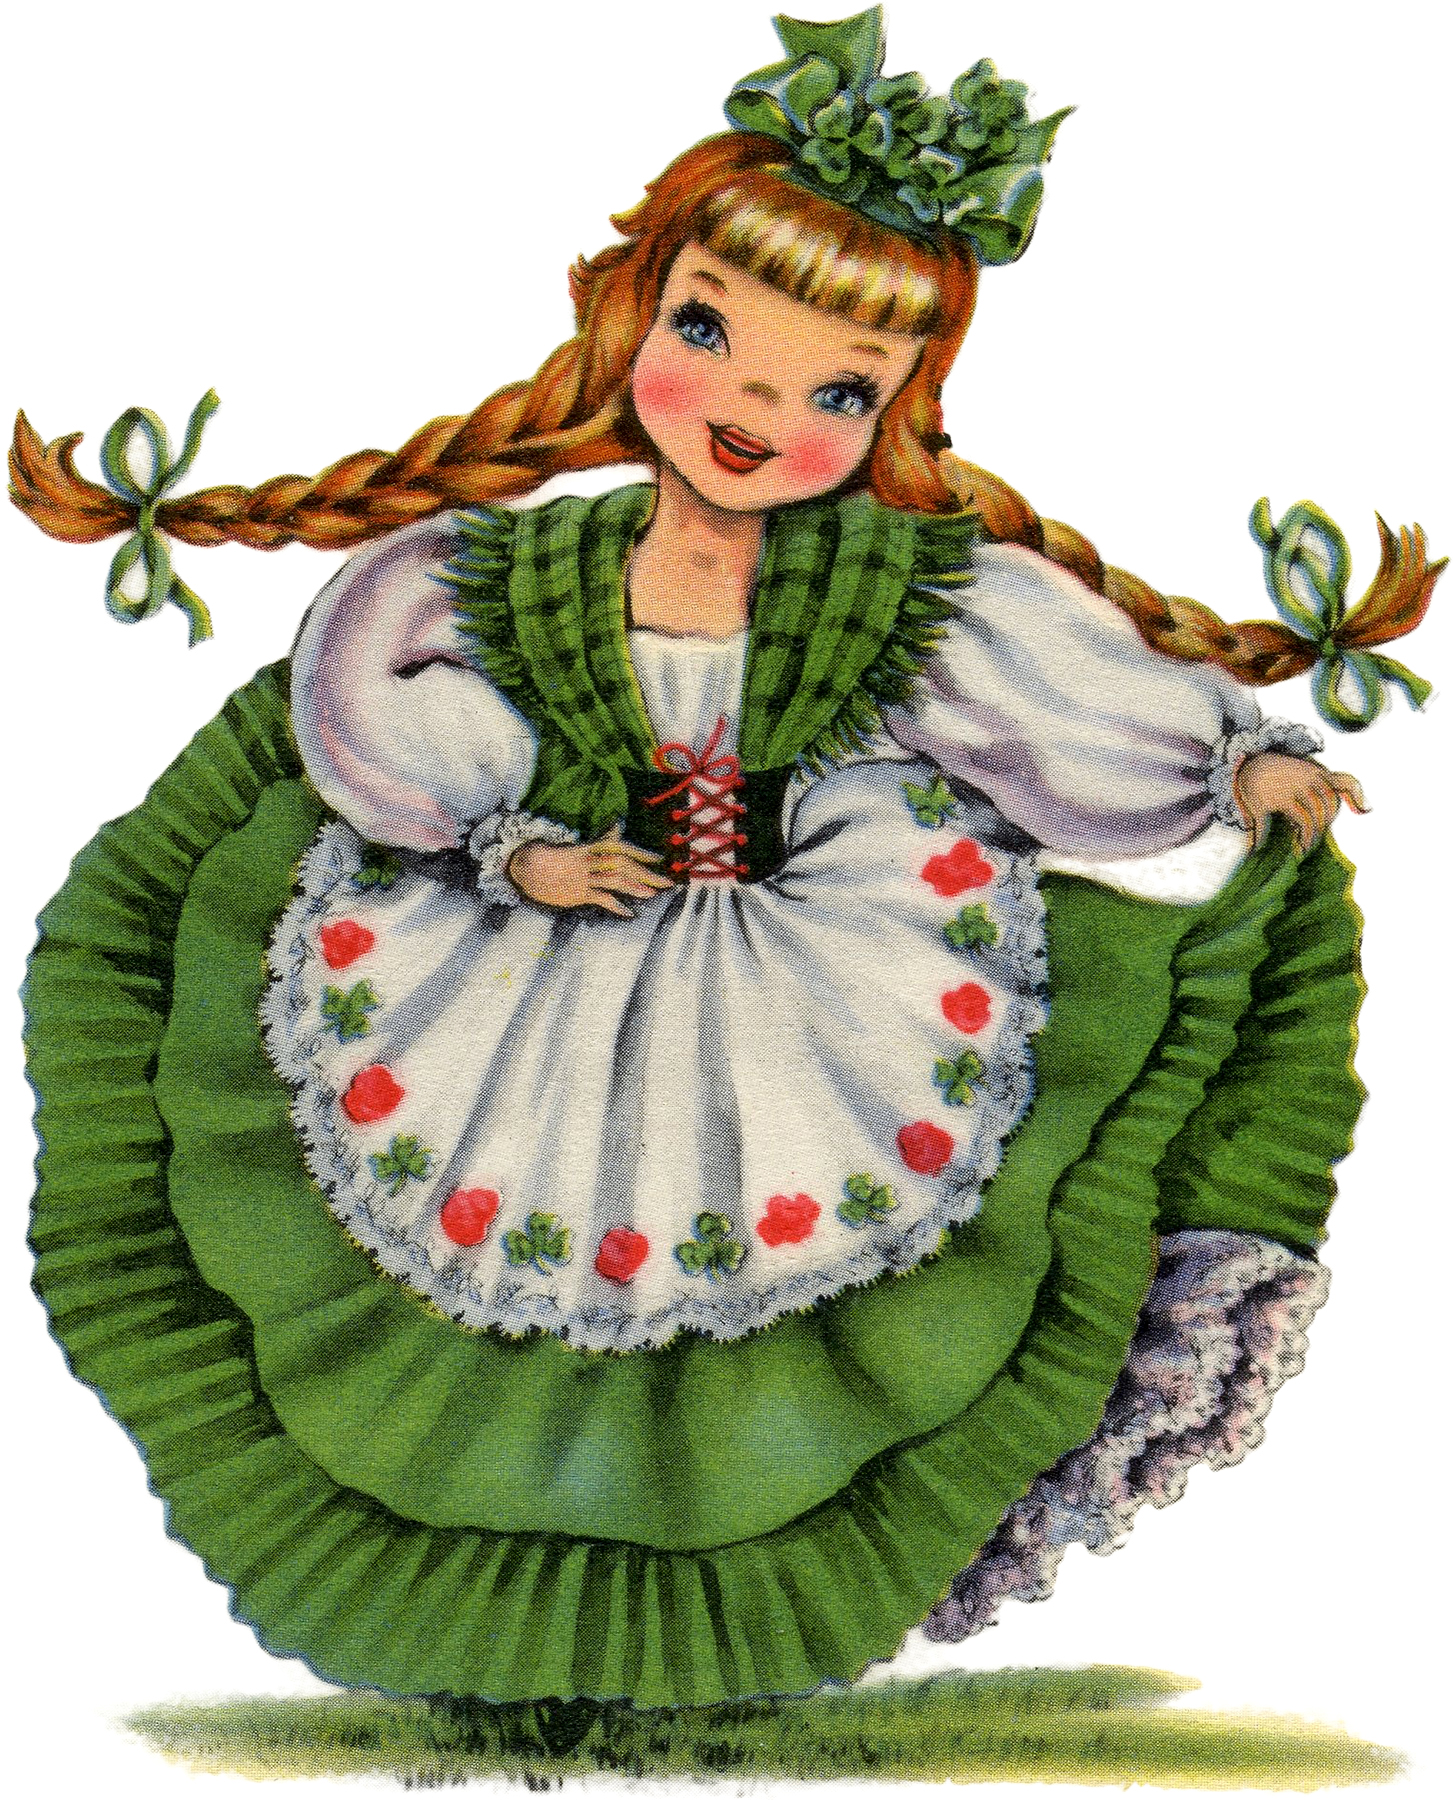 Retro Irish Doll Image